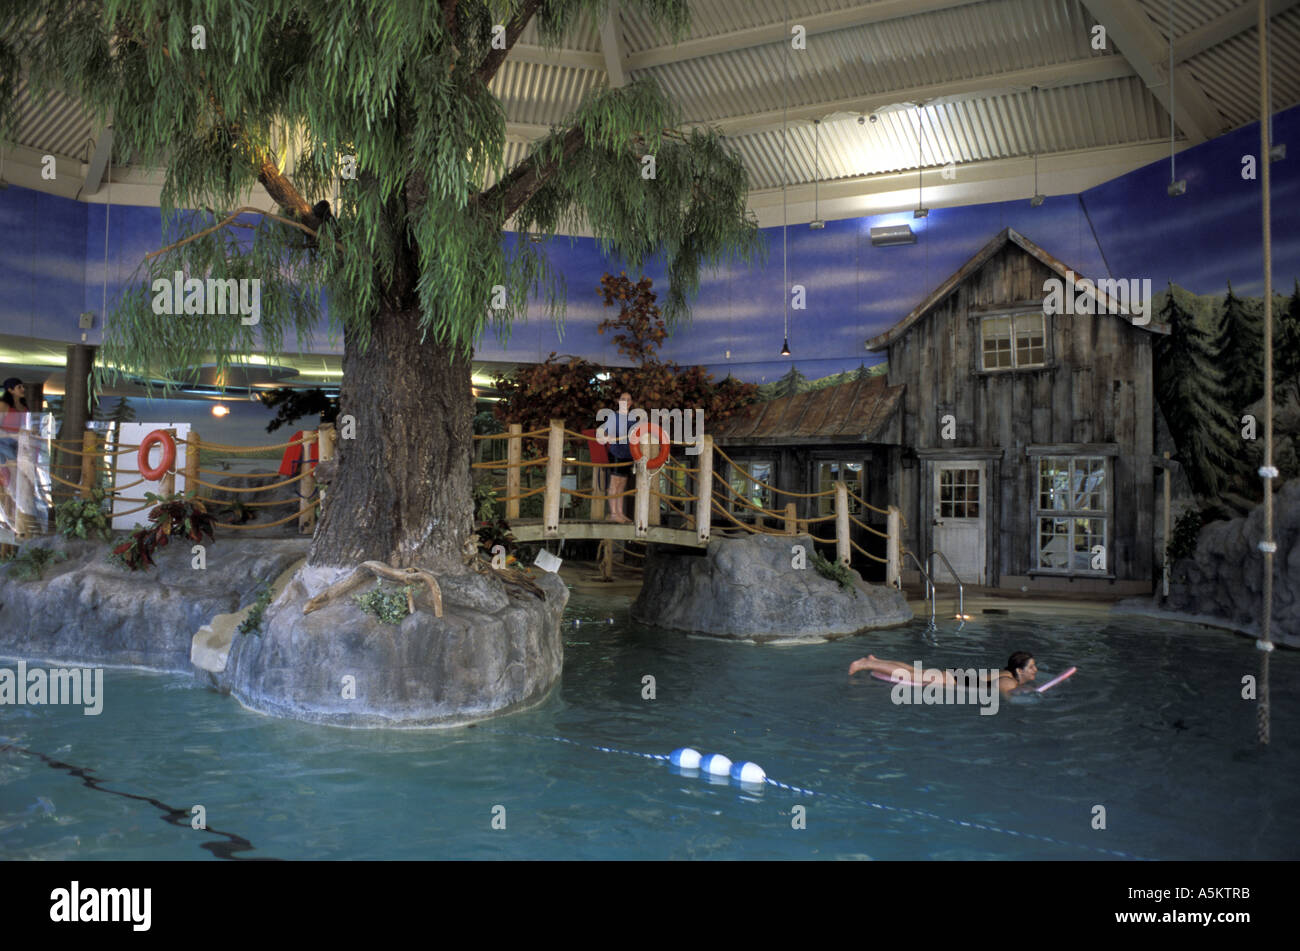 The Indoor Swimming Pool At Tremblant Ski Resort Near Montreal Quebec Stock Photo Royalty Free